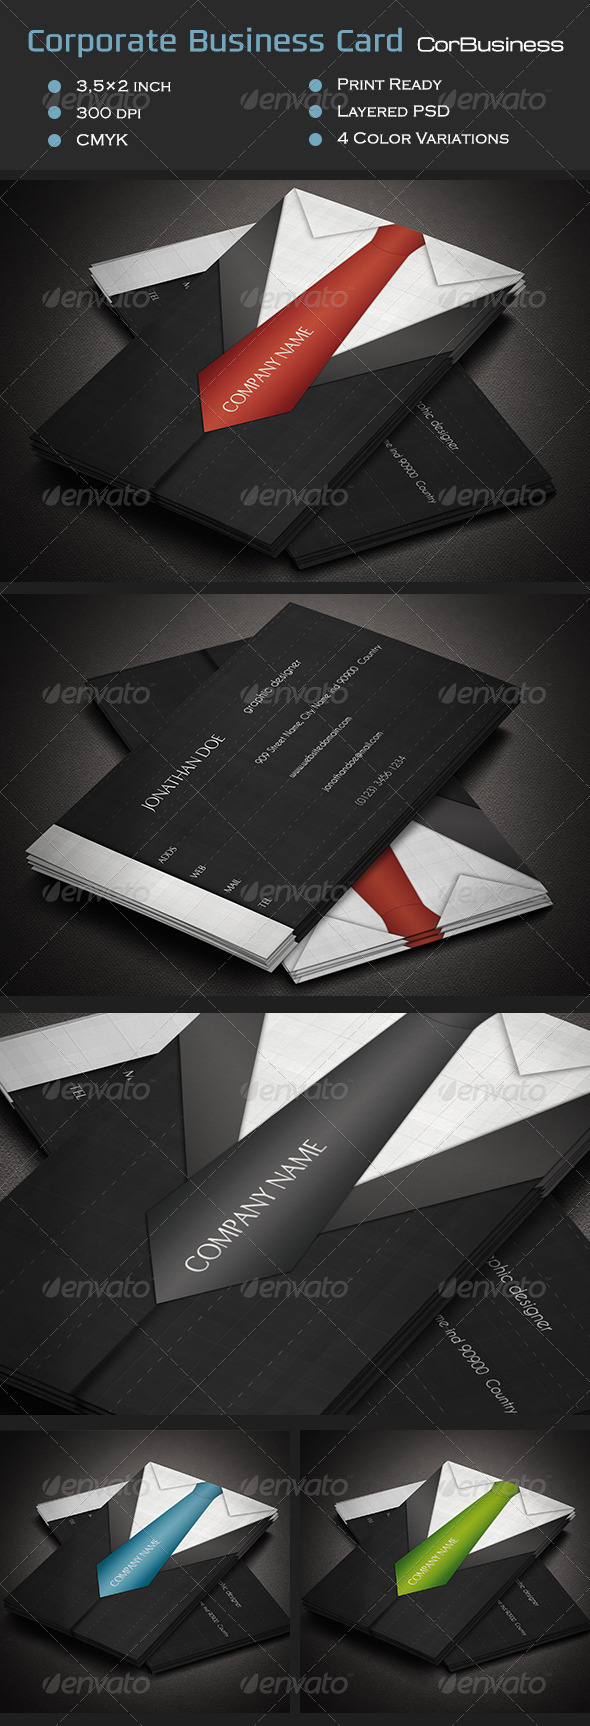 GraphicRiver Corporate Business Card CorBusiness 7112212